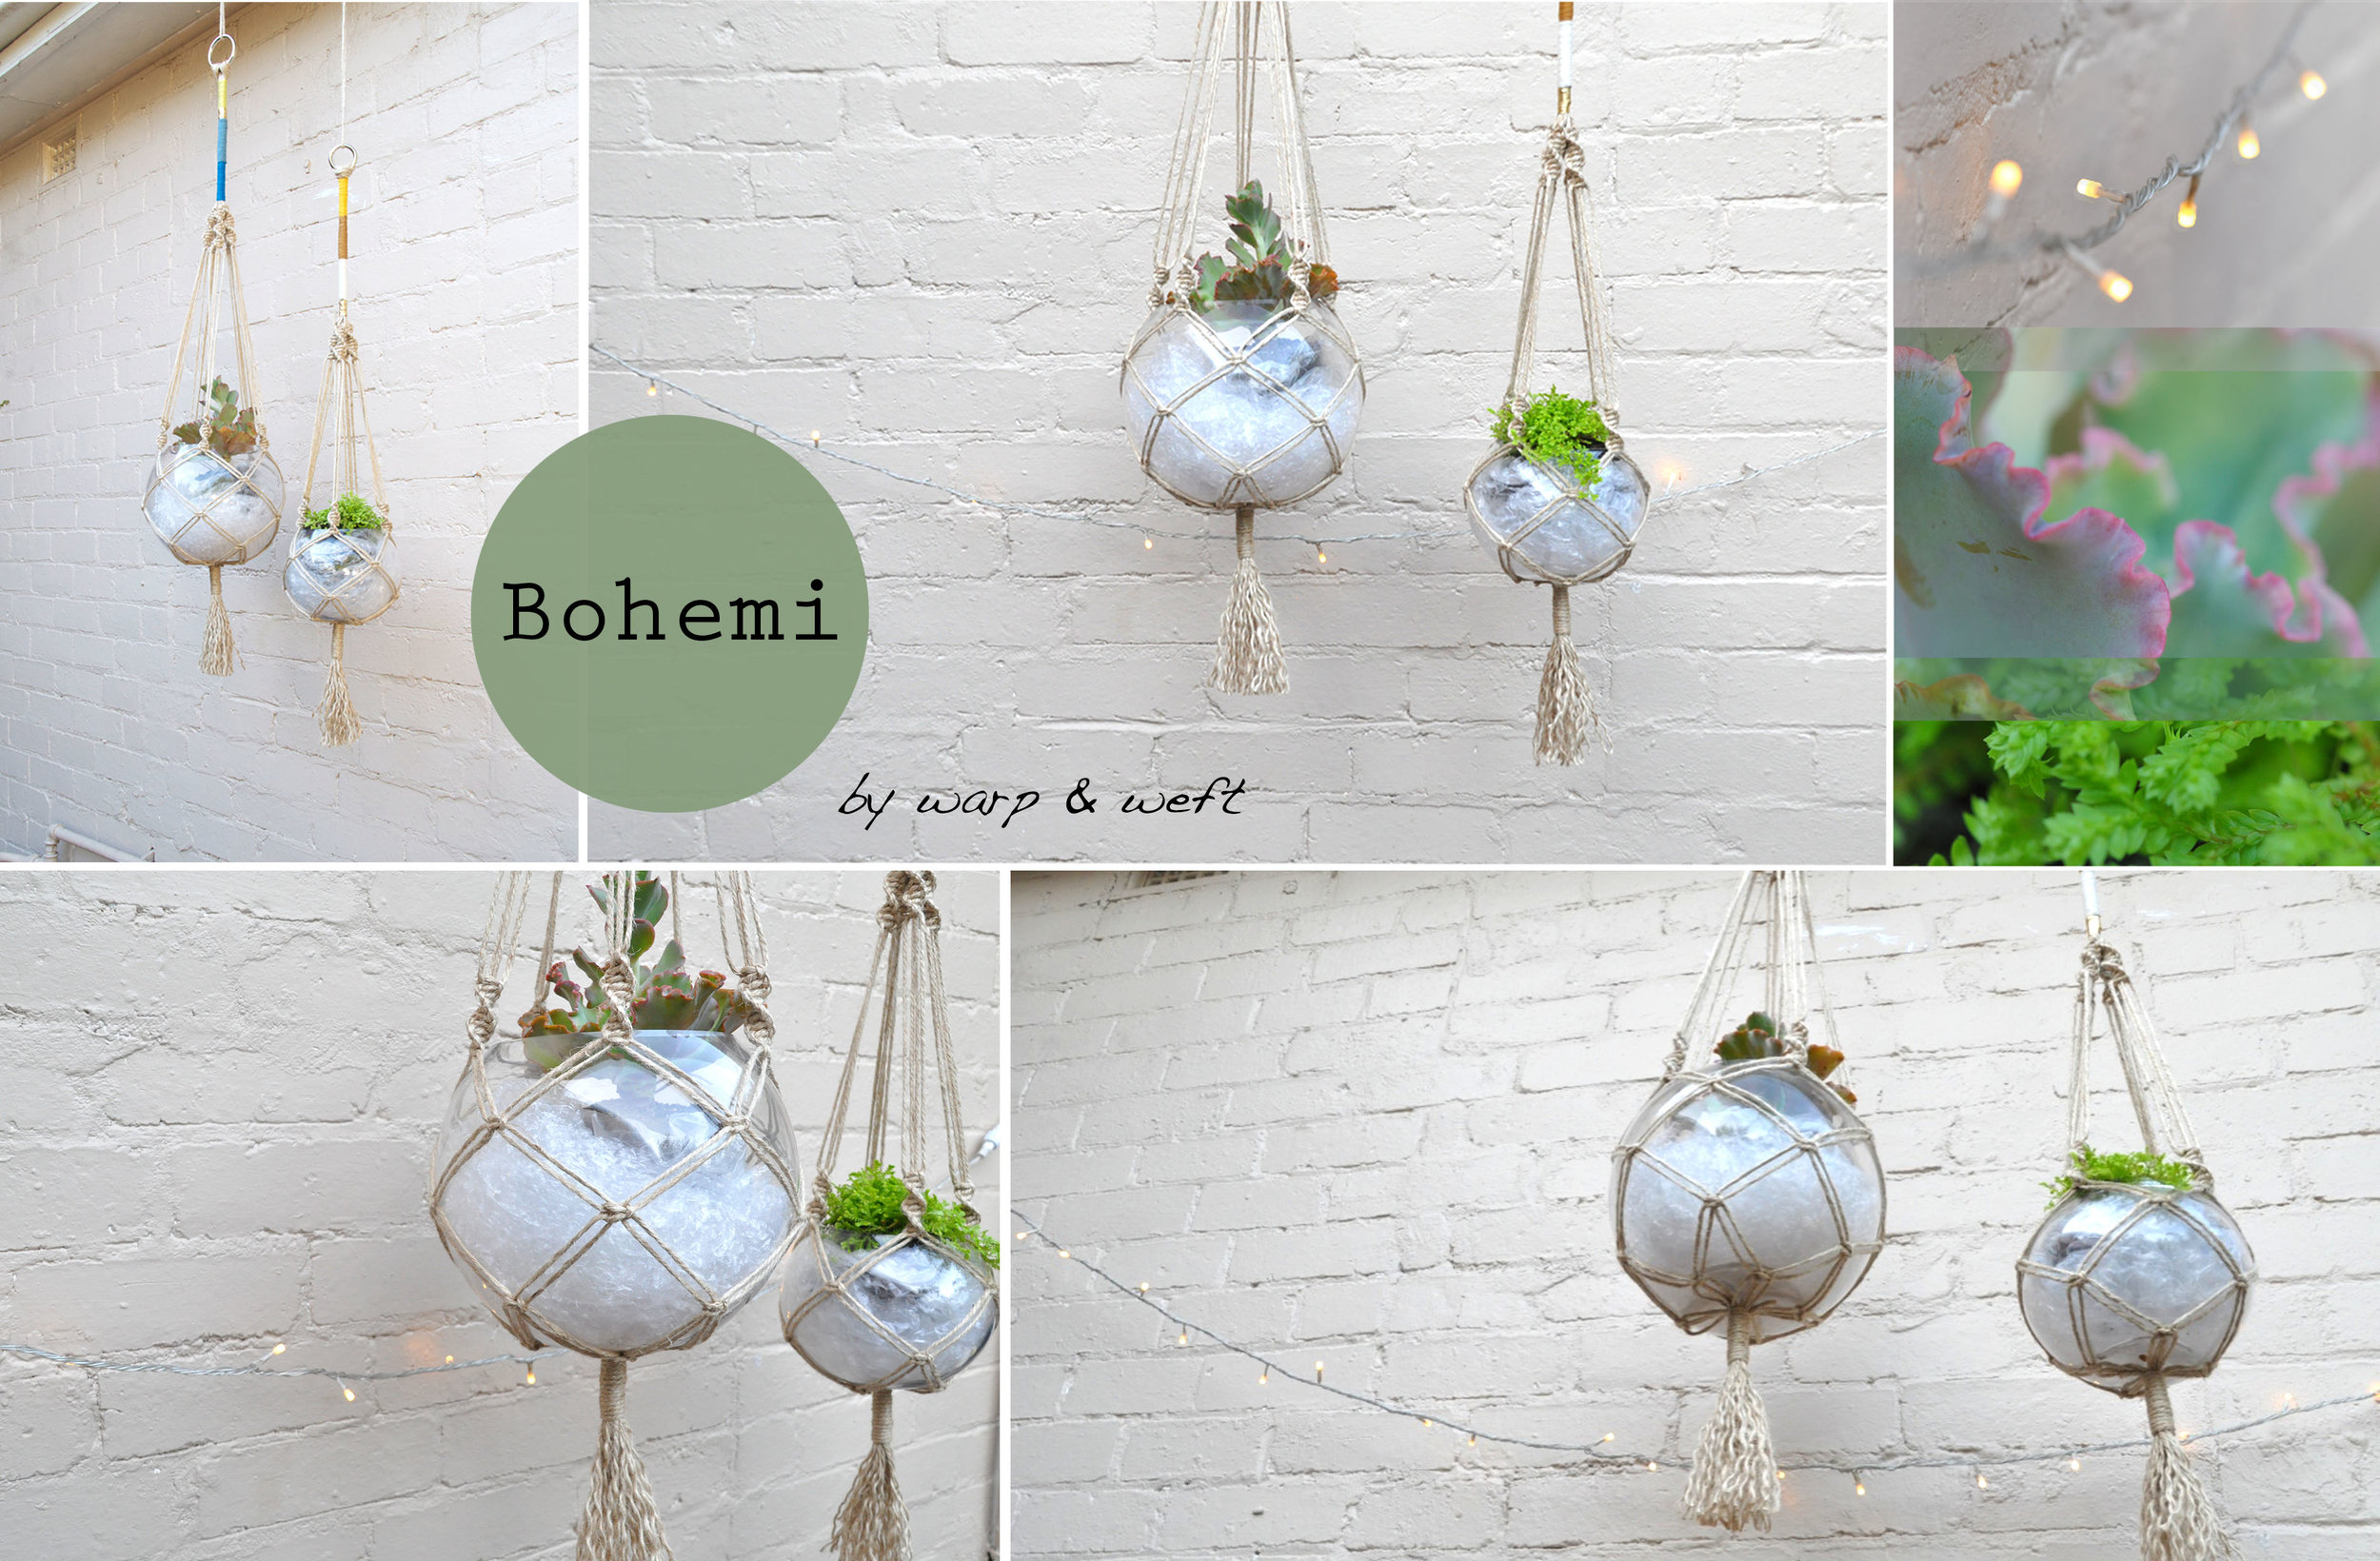 This macramé plant hanger is made from natural jute locally sourced and features a series of accented coloured threads for that more modern look. Its a beautiful piece for an interior space... - Comes in 2 sizes. Small (Right) and Large (Left)- Each pieces come with glass sphere bowl